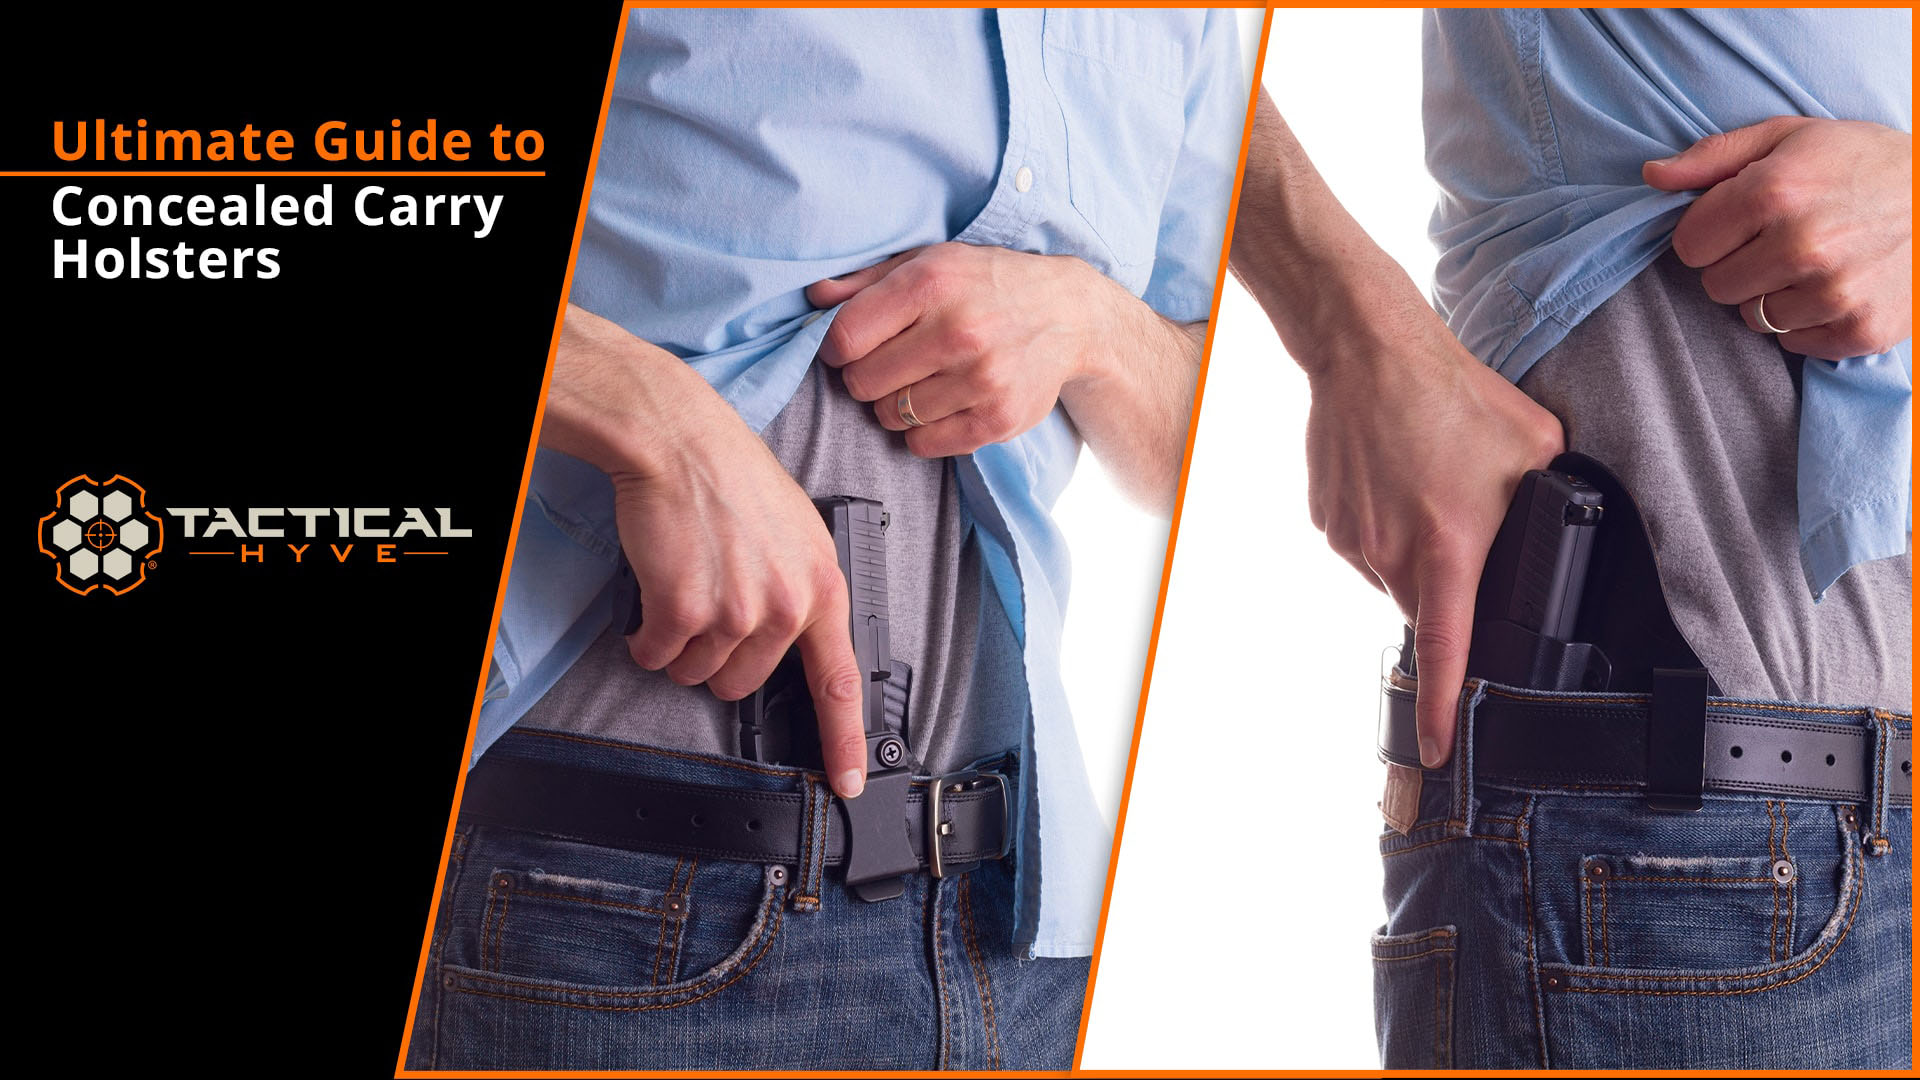 Ultimate Guide to Concealed Carry Holsters - Tactical Hyve